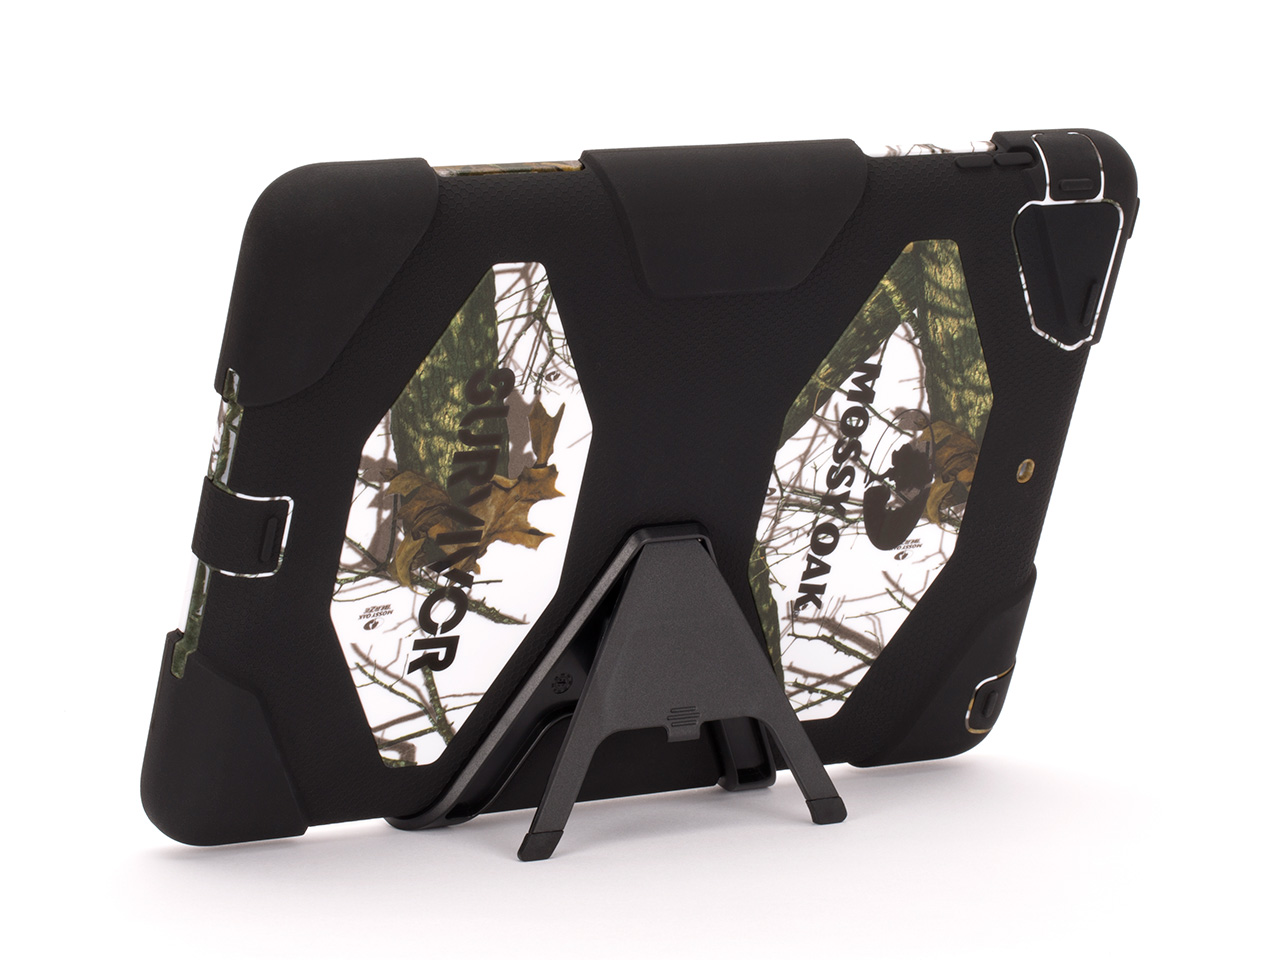 Winter Breakup/Black Survivor All-Terrain in Mossy Oak Camo + Stand for iPad Air